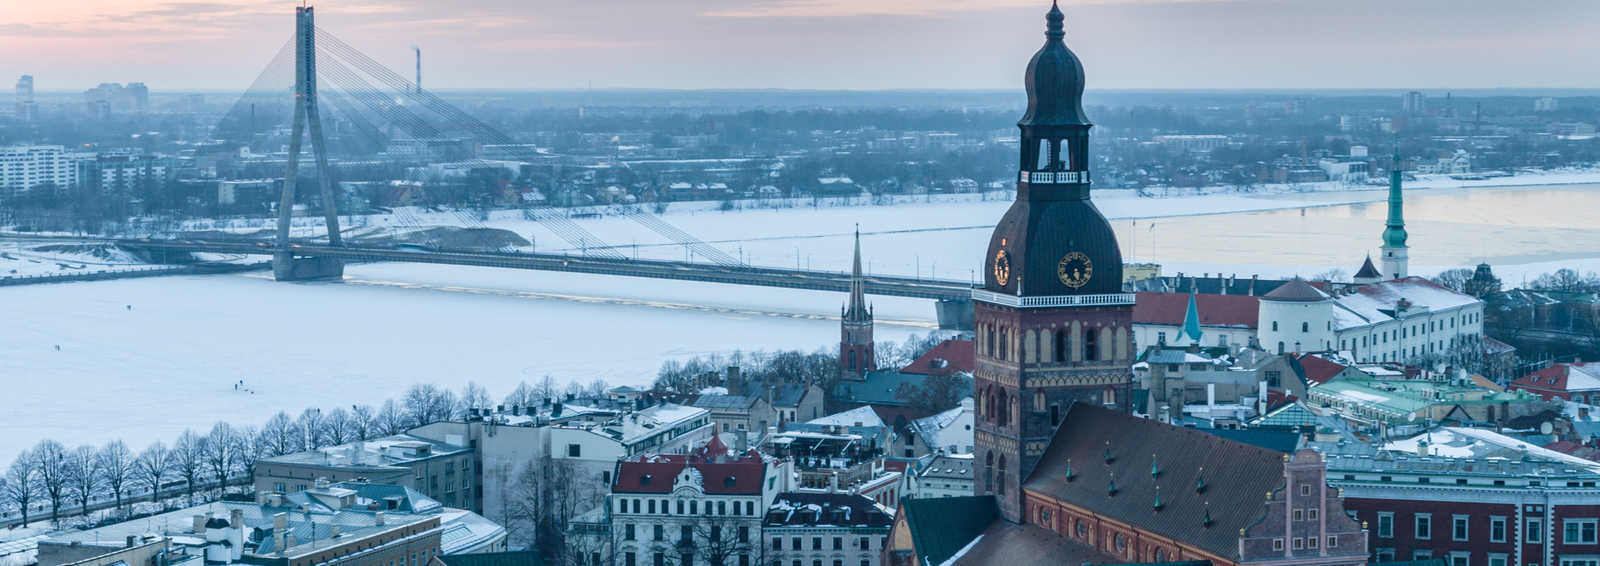 Old and modern Riga winter from viewing platform after sunset, Latvia